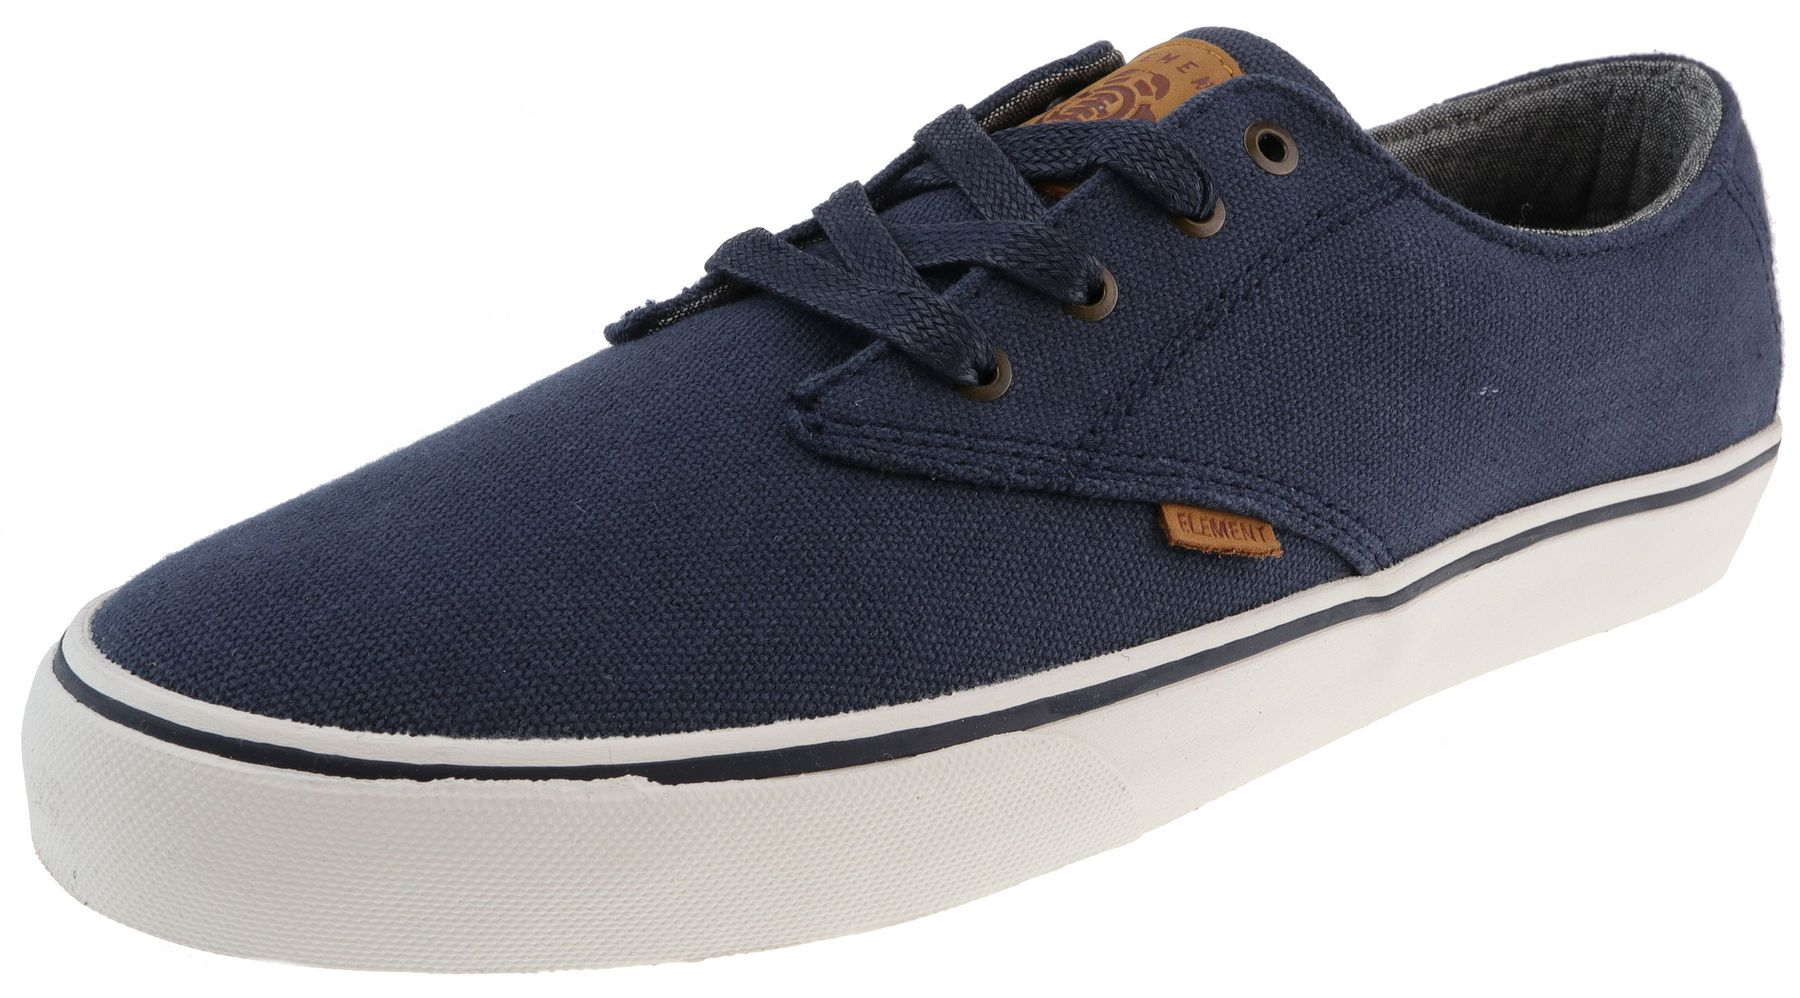 Element VERNON C3 Skaterschuhe THE GUARDIANS